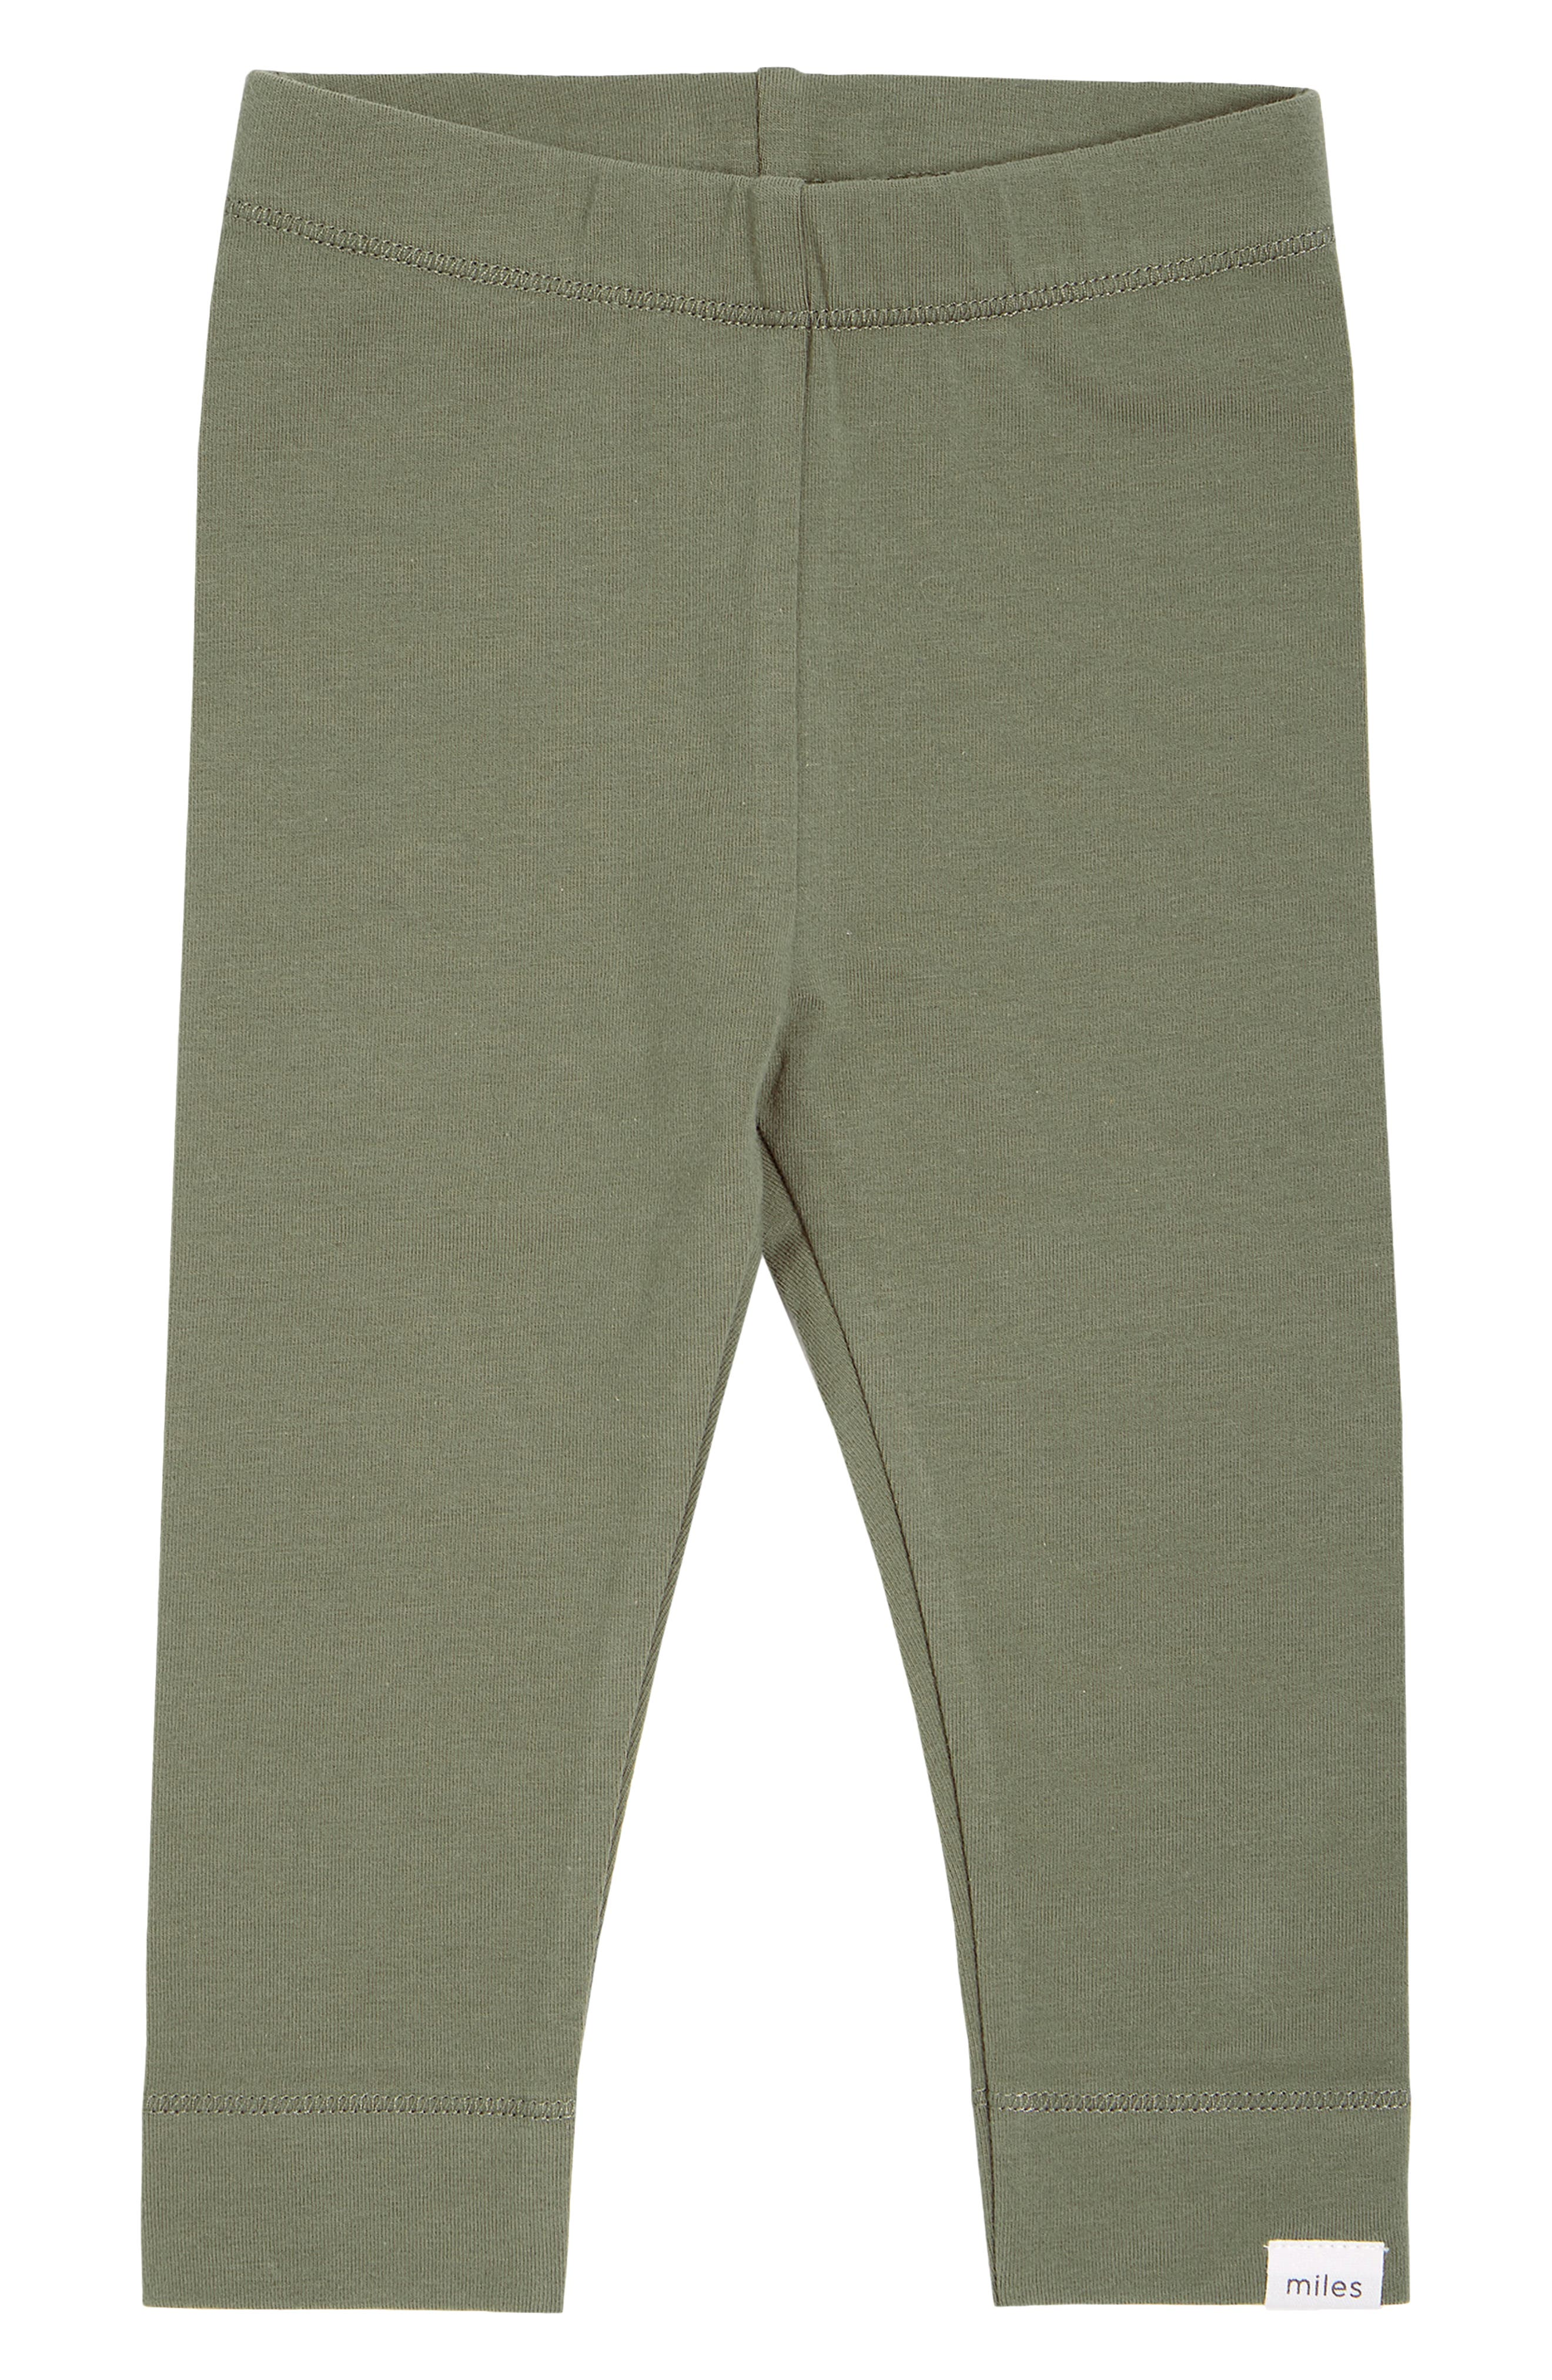 These everyday leggings cut from soft and stretchy organic cotton span the seasons in a cool sage hue. Style Name: Miles Knit Leggings (Baby). Style Number: 6087369. Available in stores.